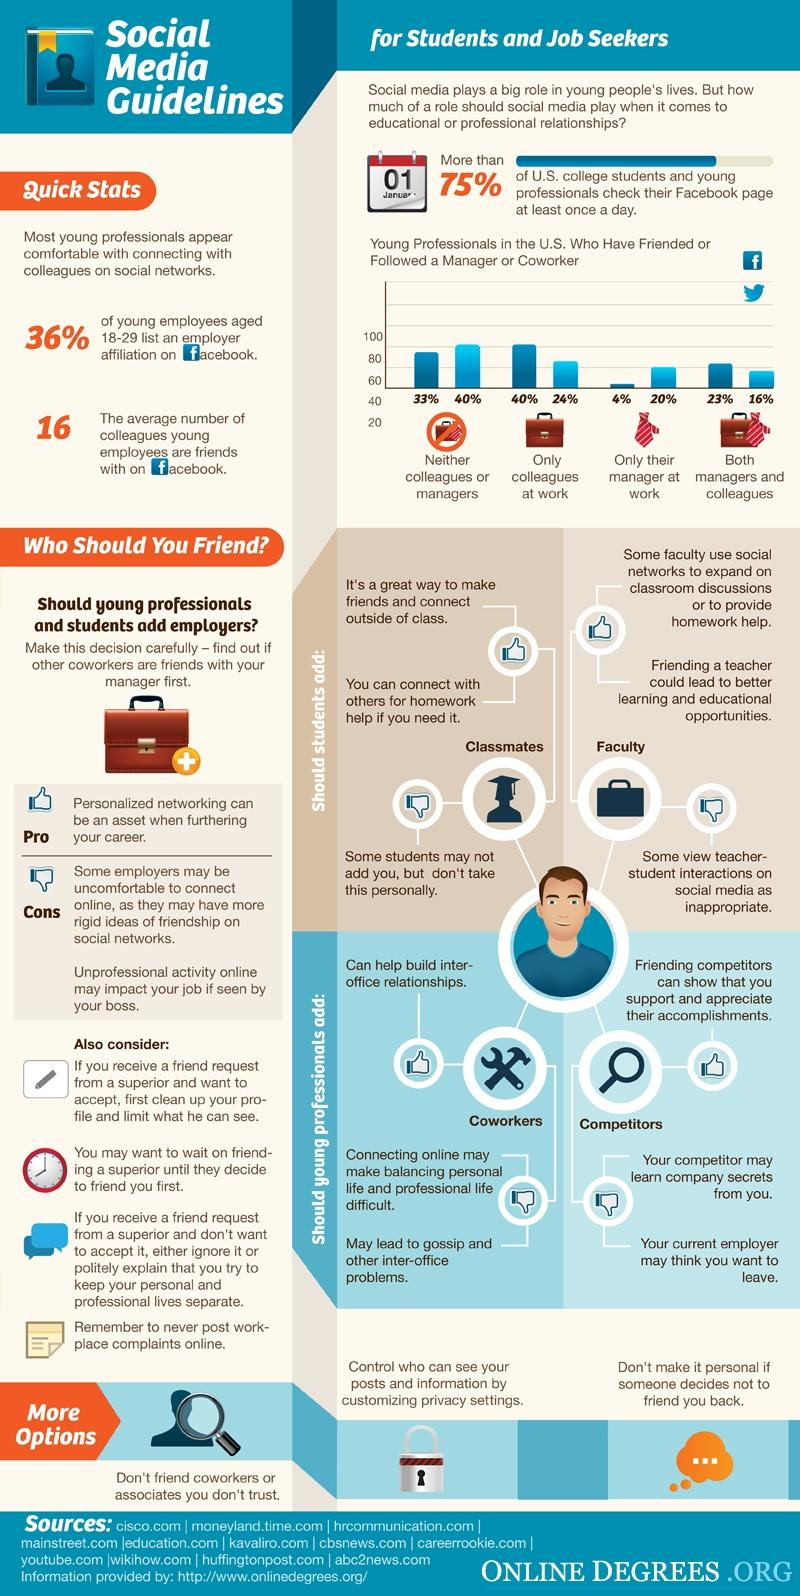 Social-Media-Tips-Students-Job-Seekers-Infographic